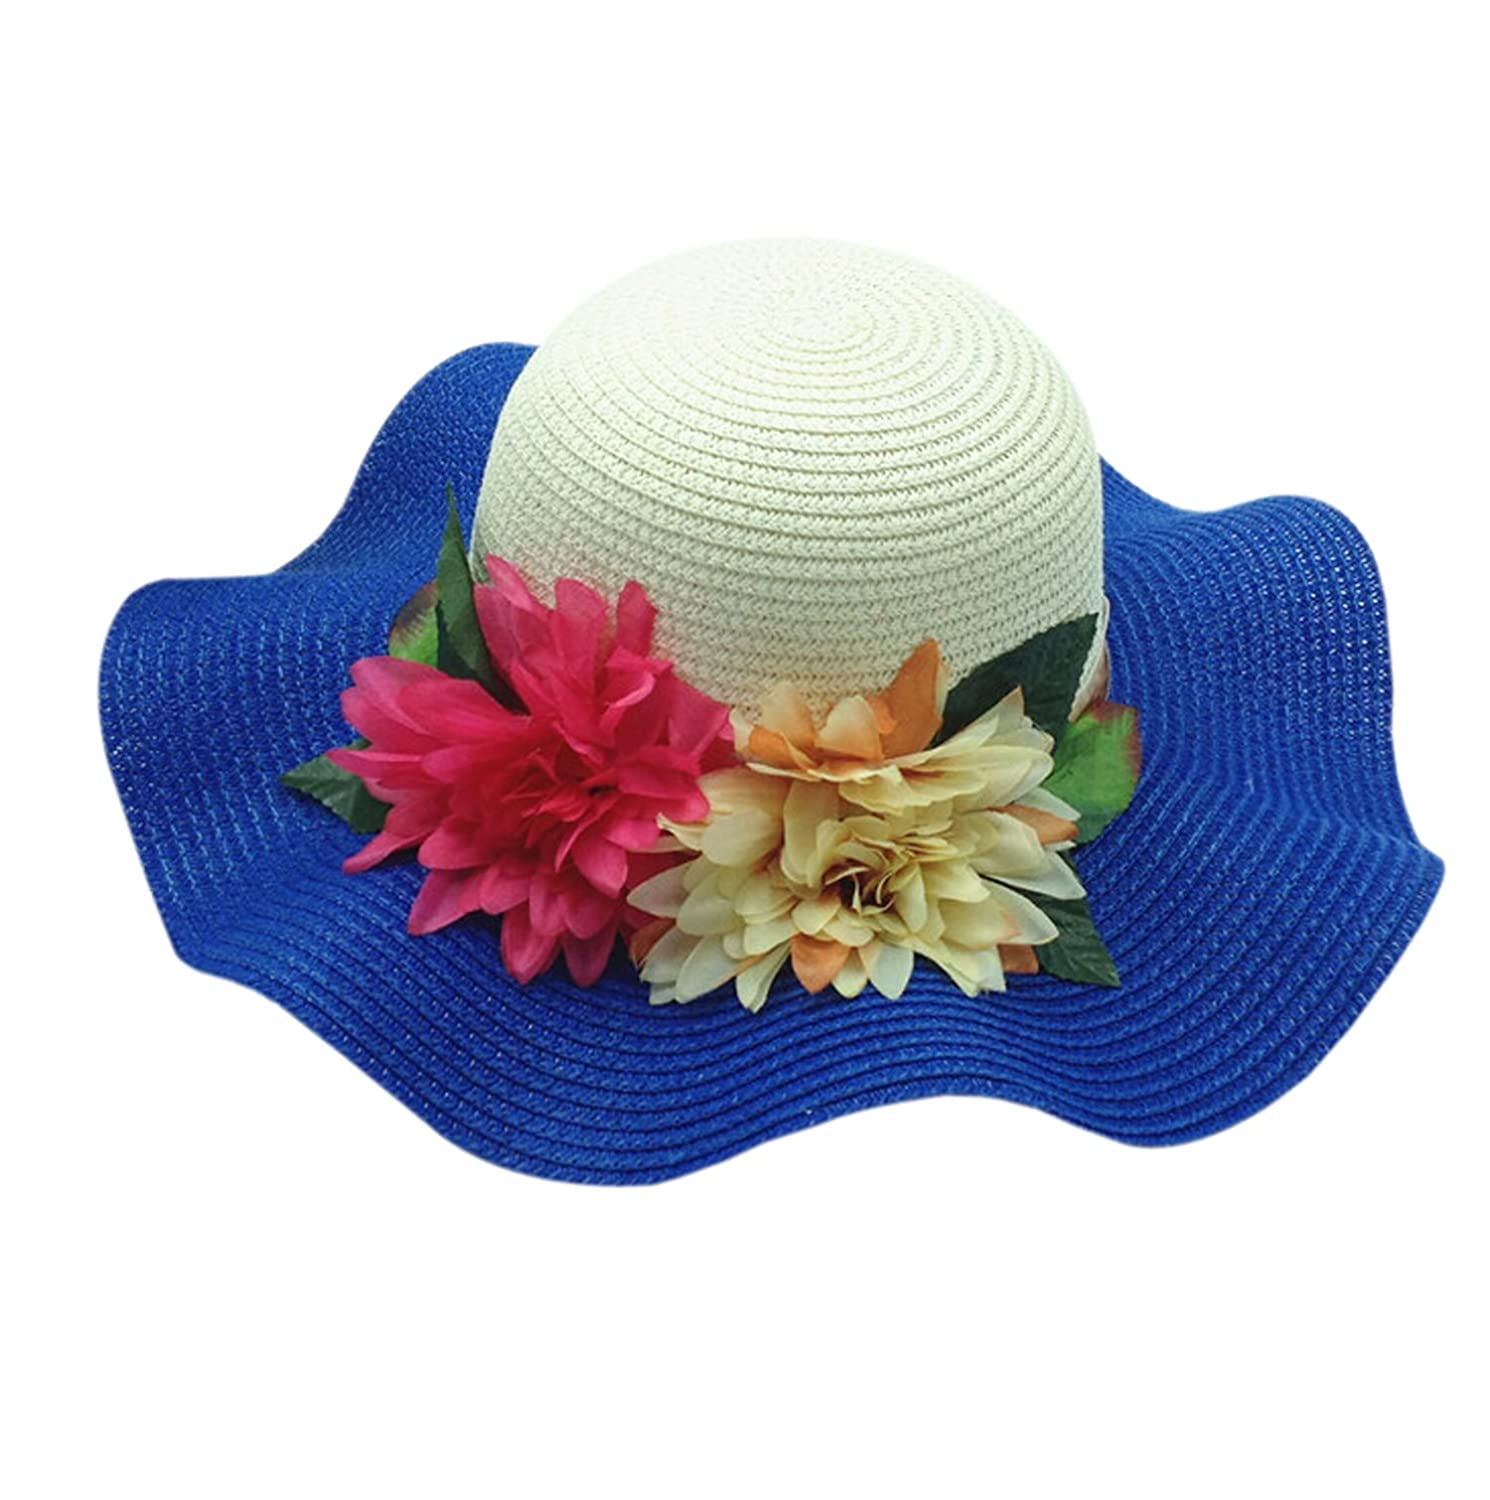 Easting Women Mixed-color Straw Hat